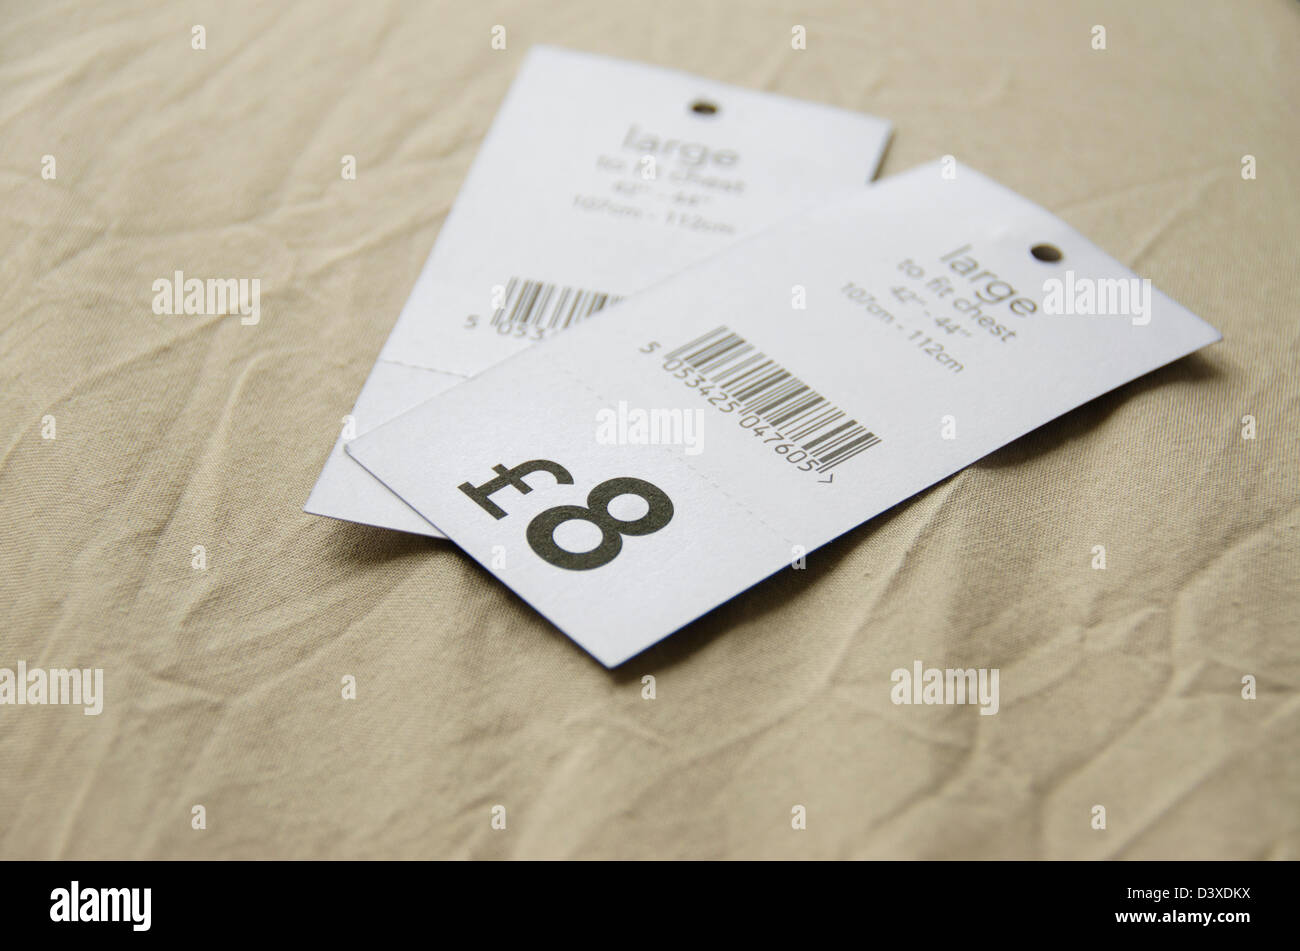 e43ce6ee6ec4 Pound price tags for upper body clothes, England, United Kingdom ...